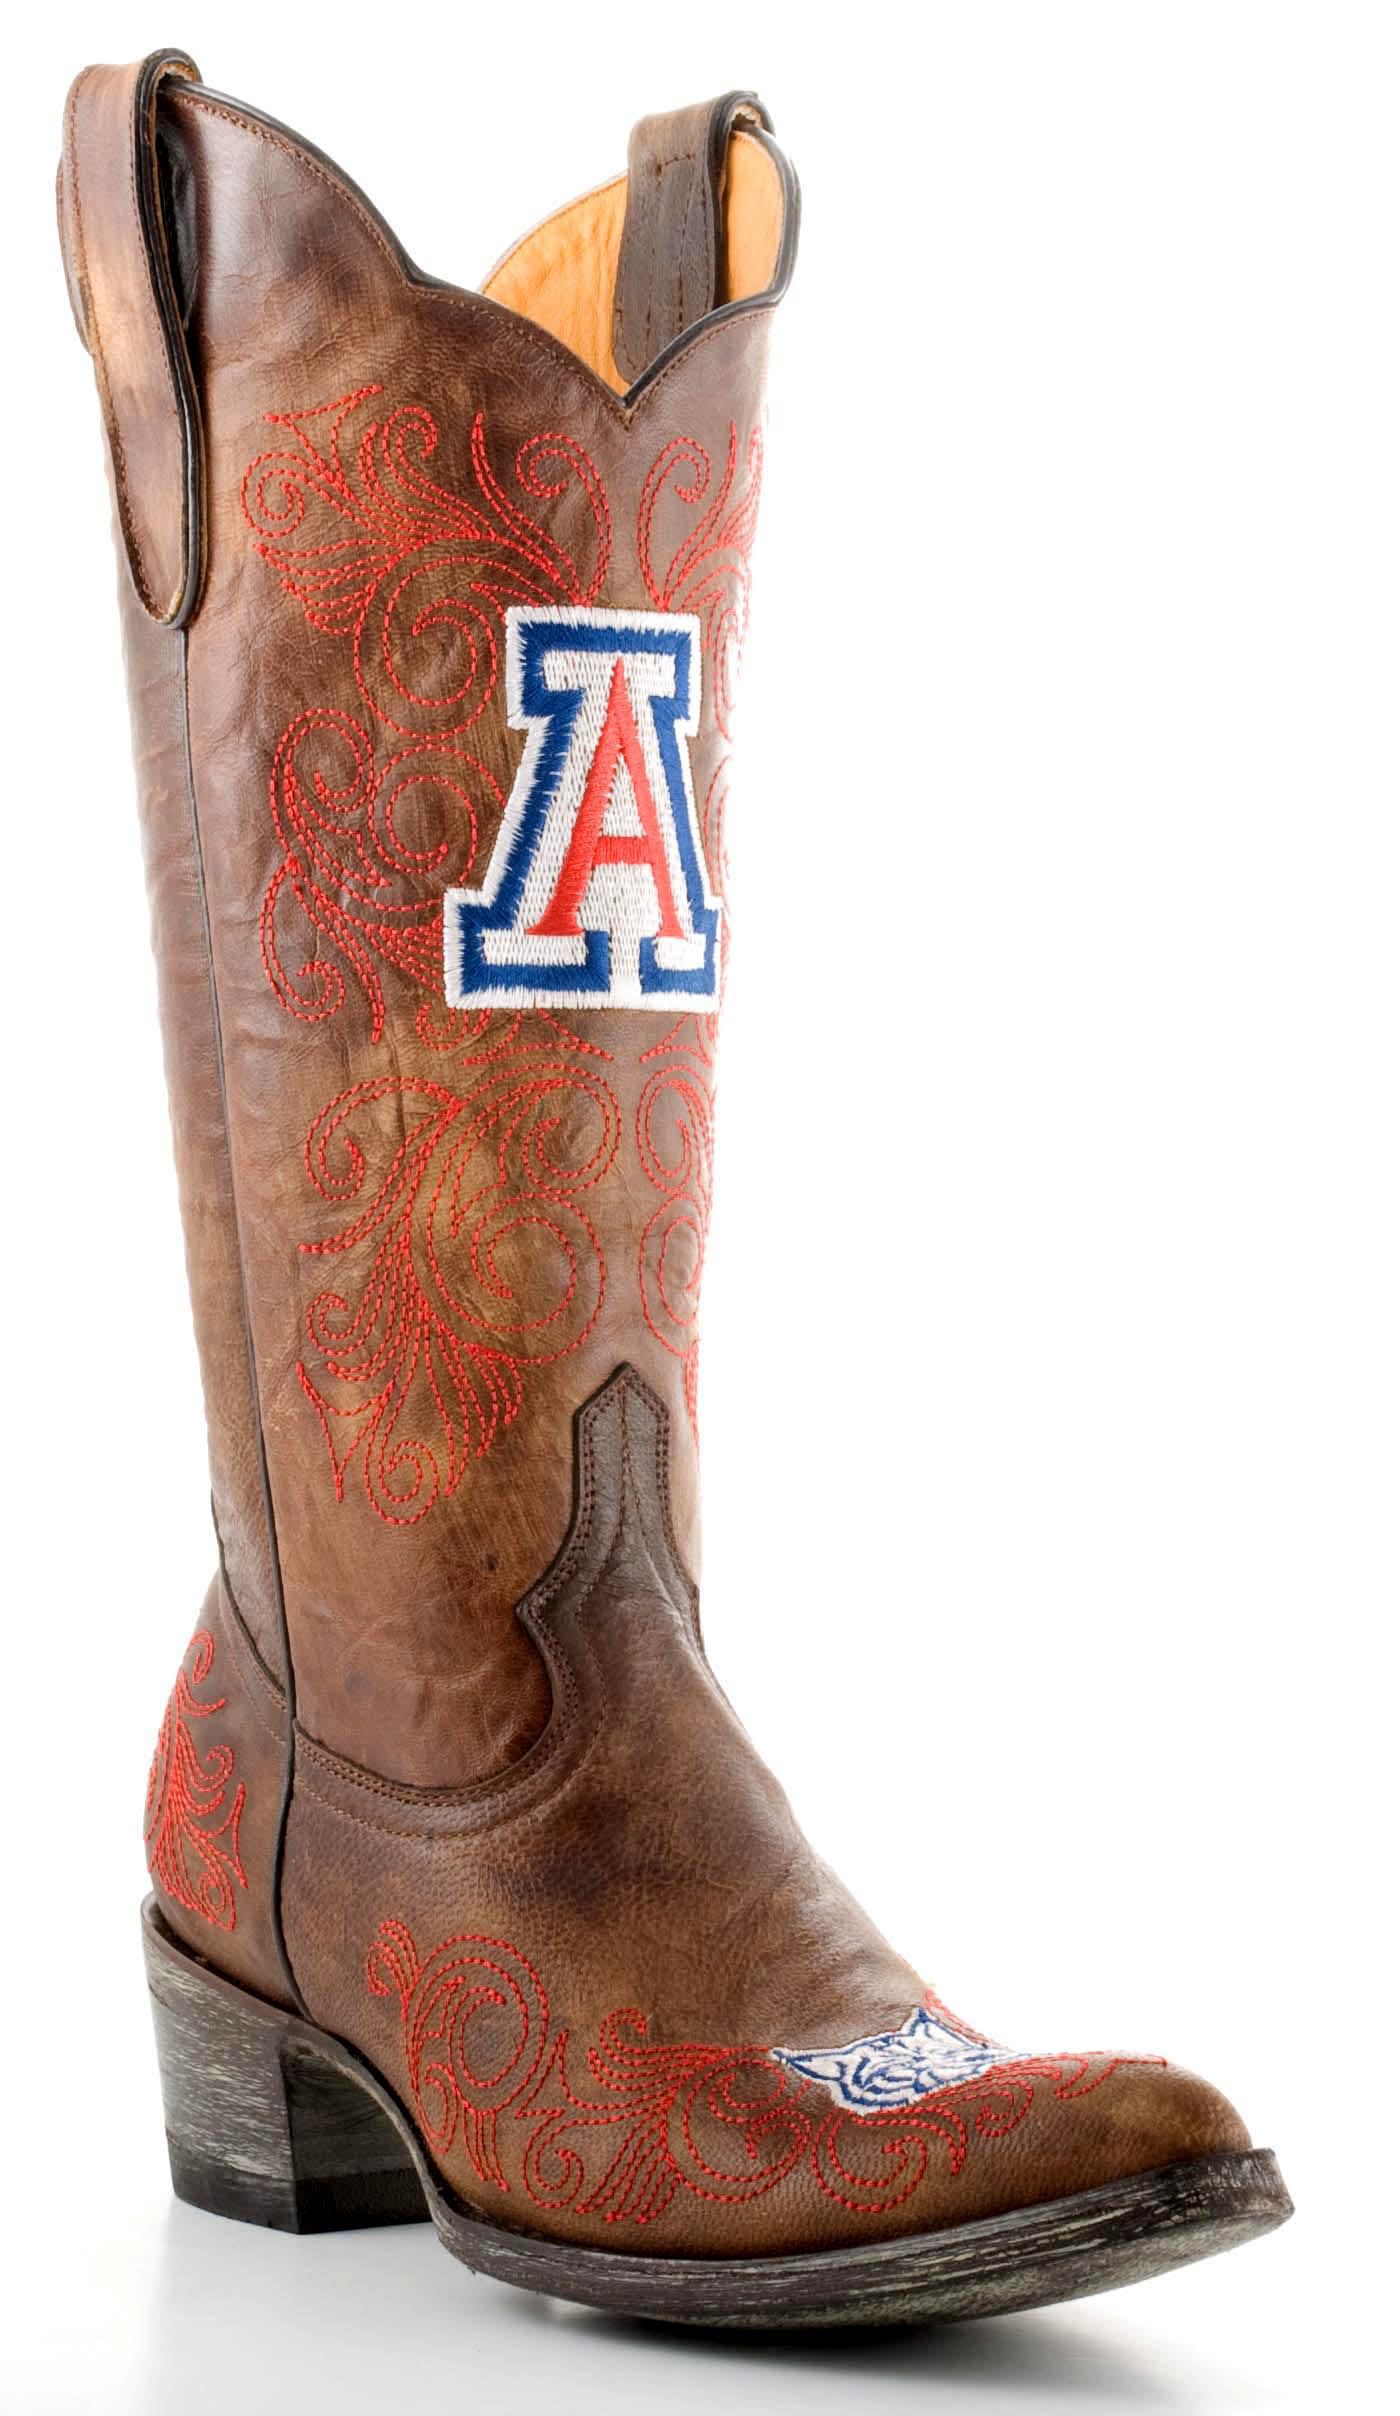 "Gameday Boots Womens 13"" Tall Leather University Of Arizona Cowboy Boots by GameDay Boots"